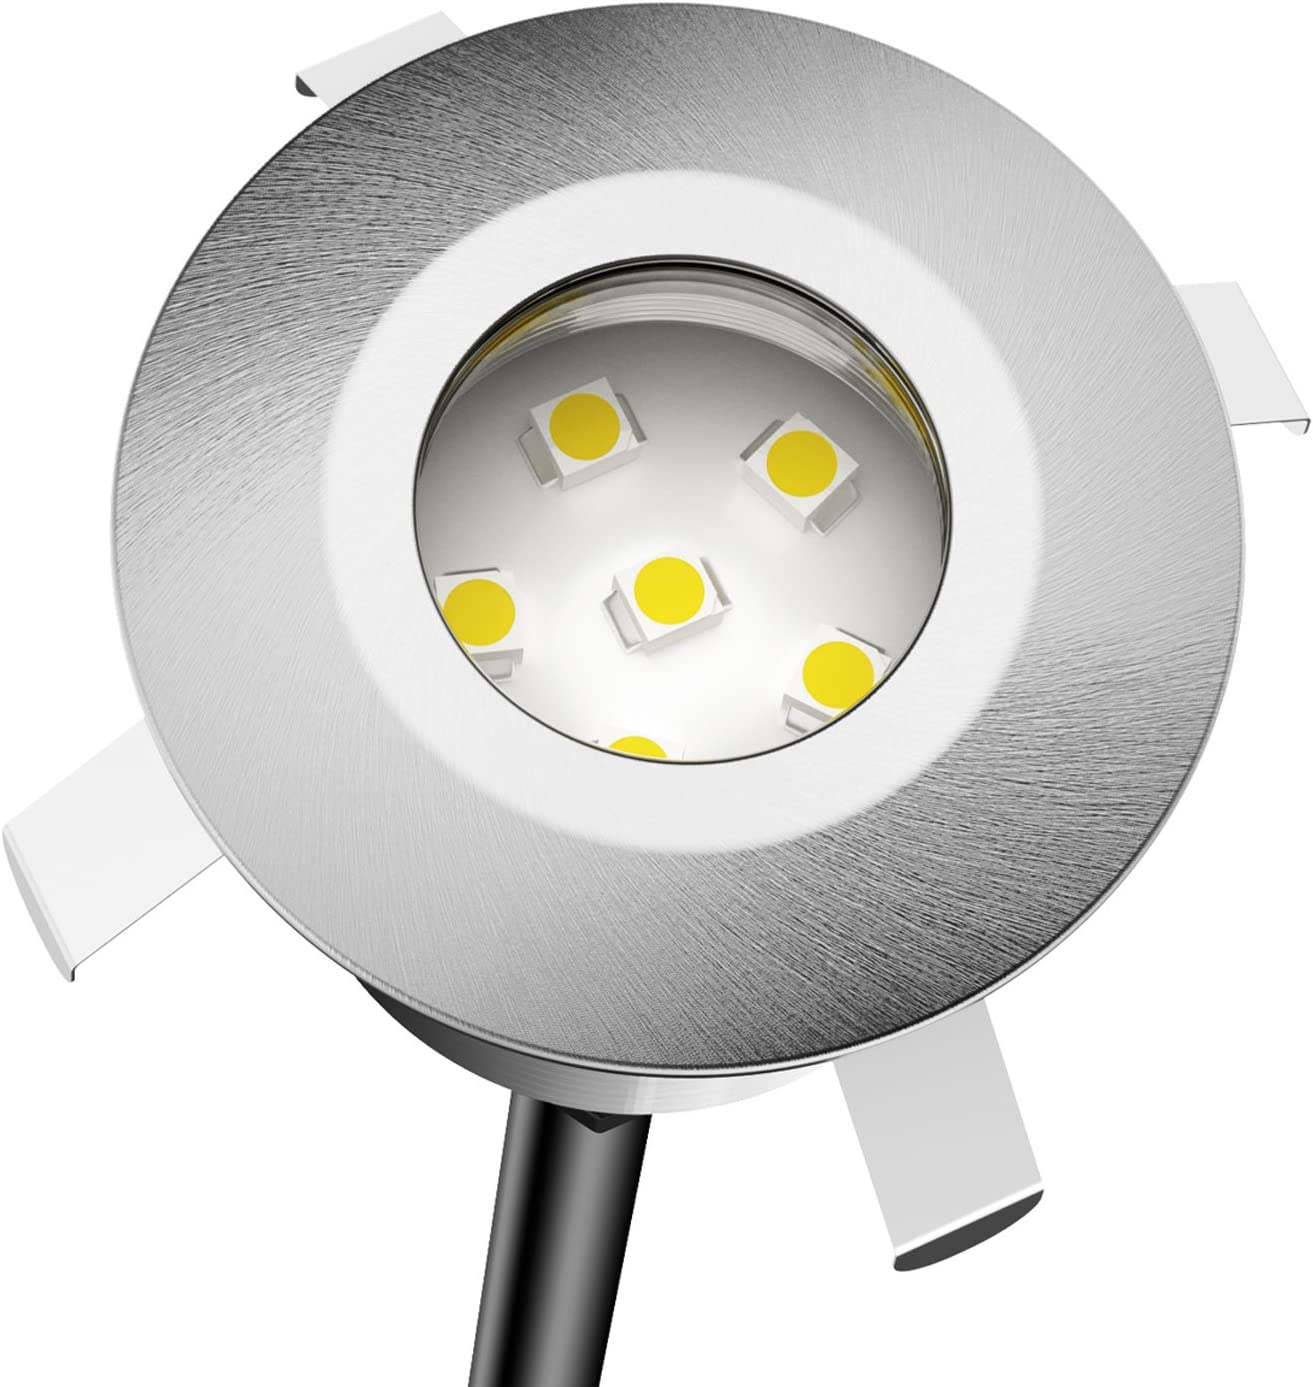 Parlat LED Recessed Ground Light Atria For Outdoor, Cold White, Each 14lm, IP65, 40mm Ø, BS, Set Of 12 Set of 8